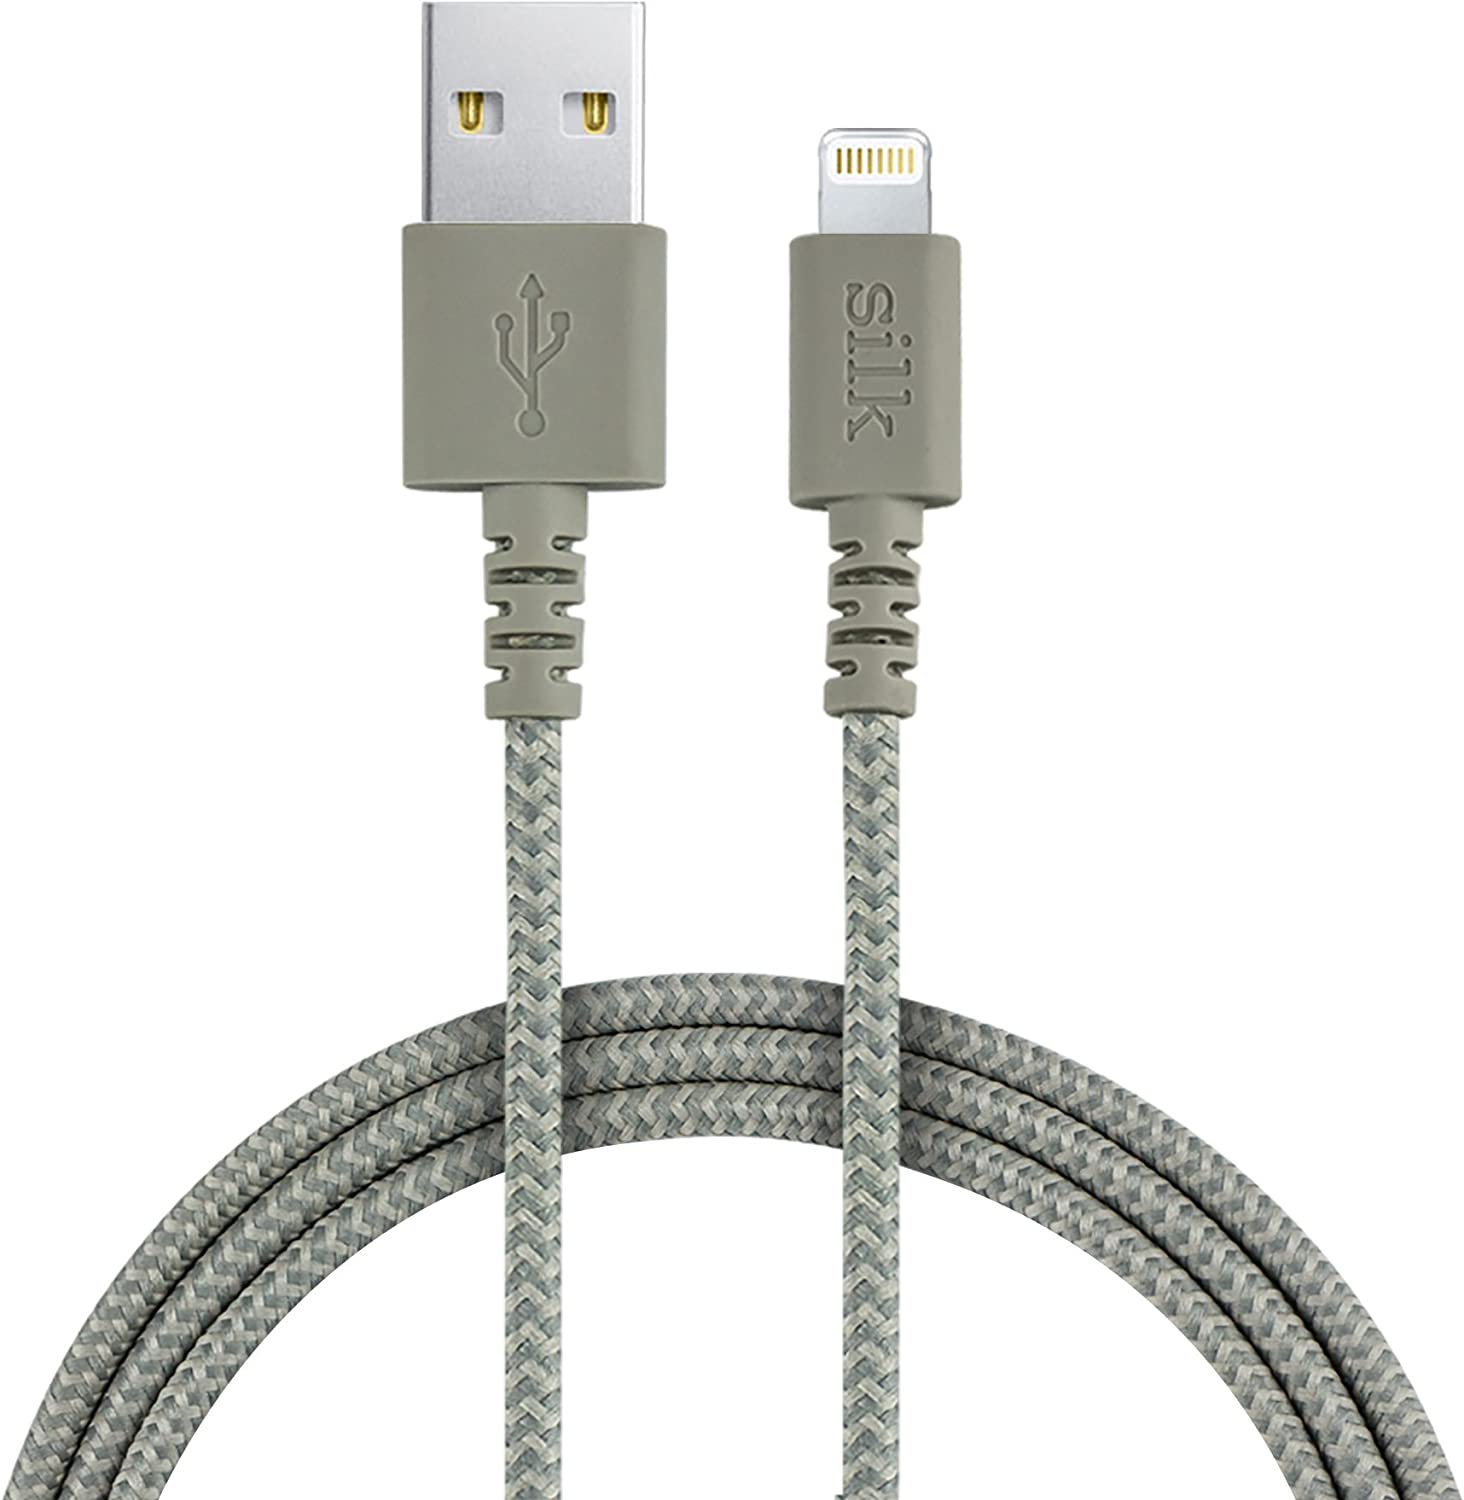 Smartish 6ft Fabric Wrapped Lightning Cable with 2 Port USB Wall Charger Silk Bolt 45 Apple MFi Certified Cord for iPhone and iPad - Lightly Toasted Beige